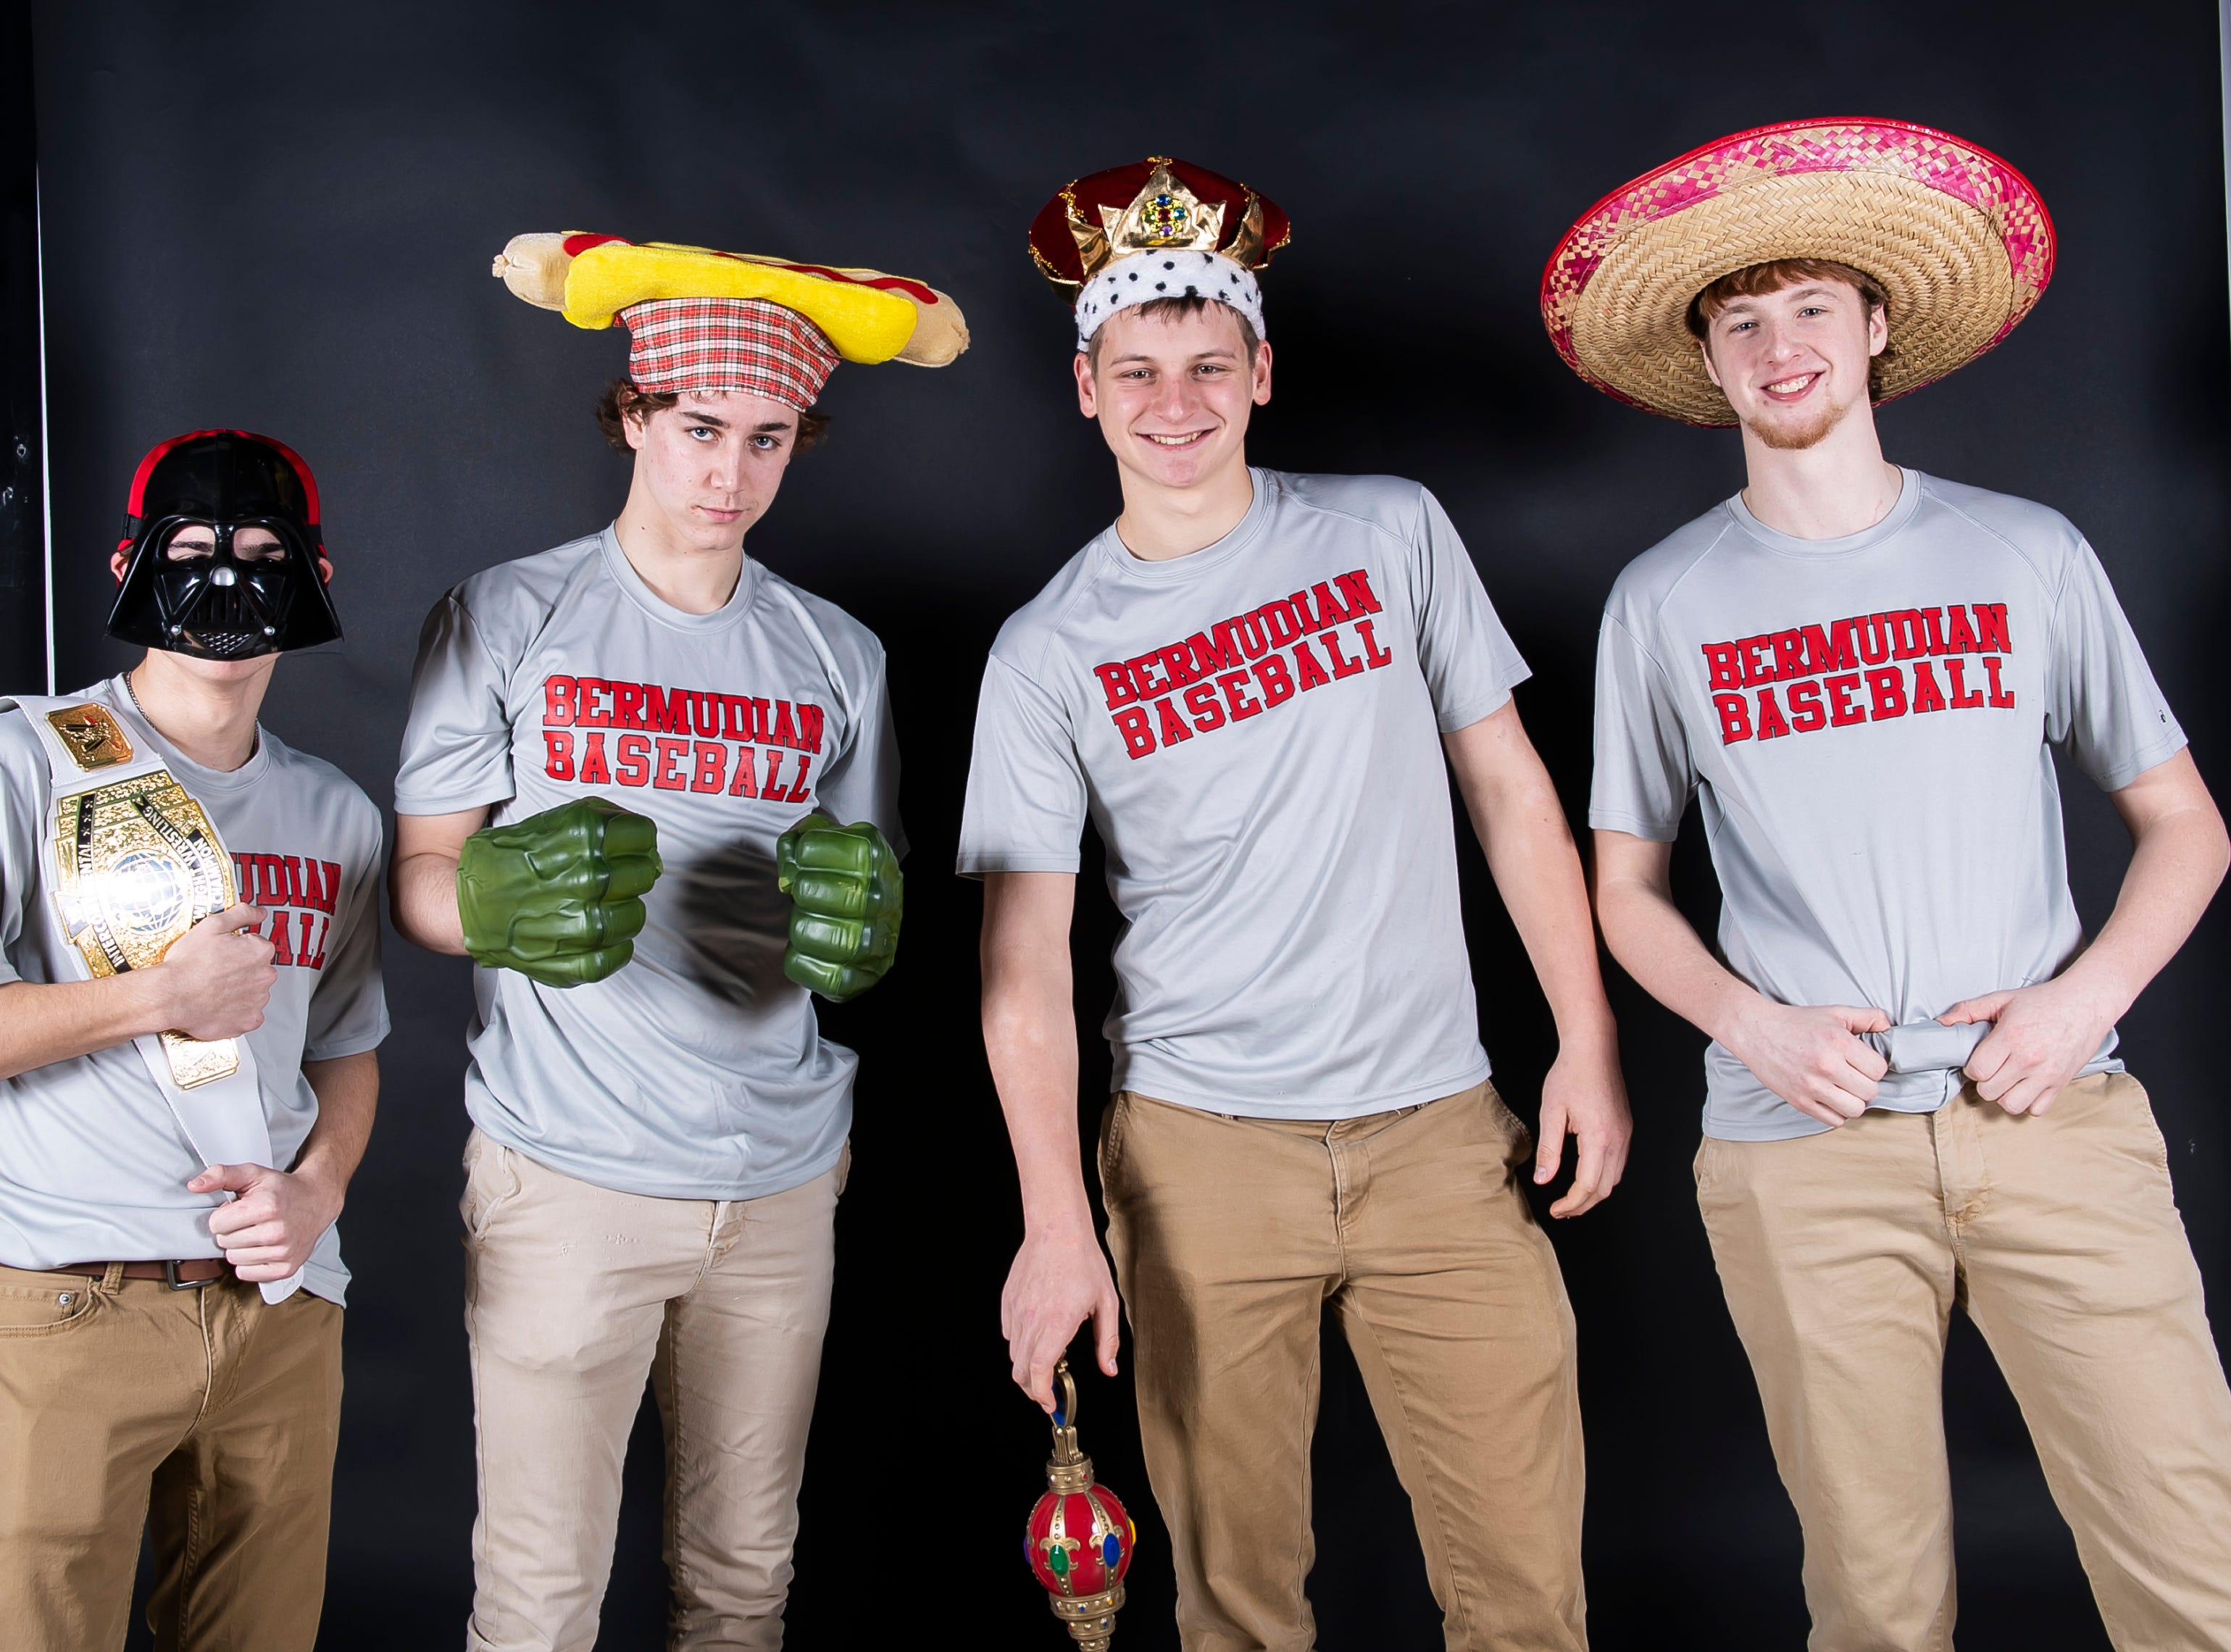 (From left) Bermudian Springs baseball players Aden Juelich, Tyler Sims, Tyler Reinert and Shane Starner strike a pose in the GameTimePA photo booth during spring sports media day in York Sunday, March 10, 2019.